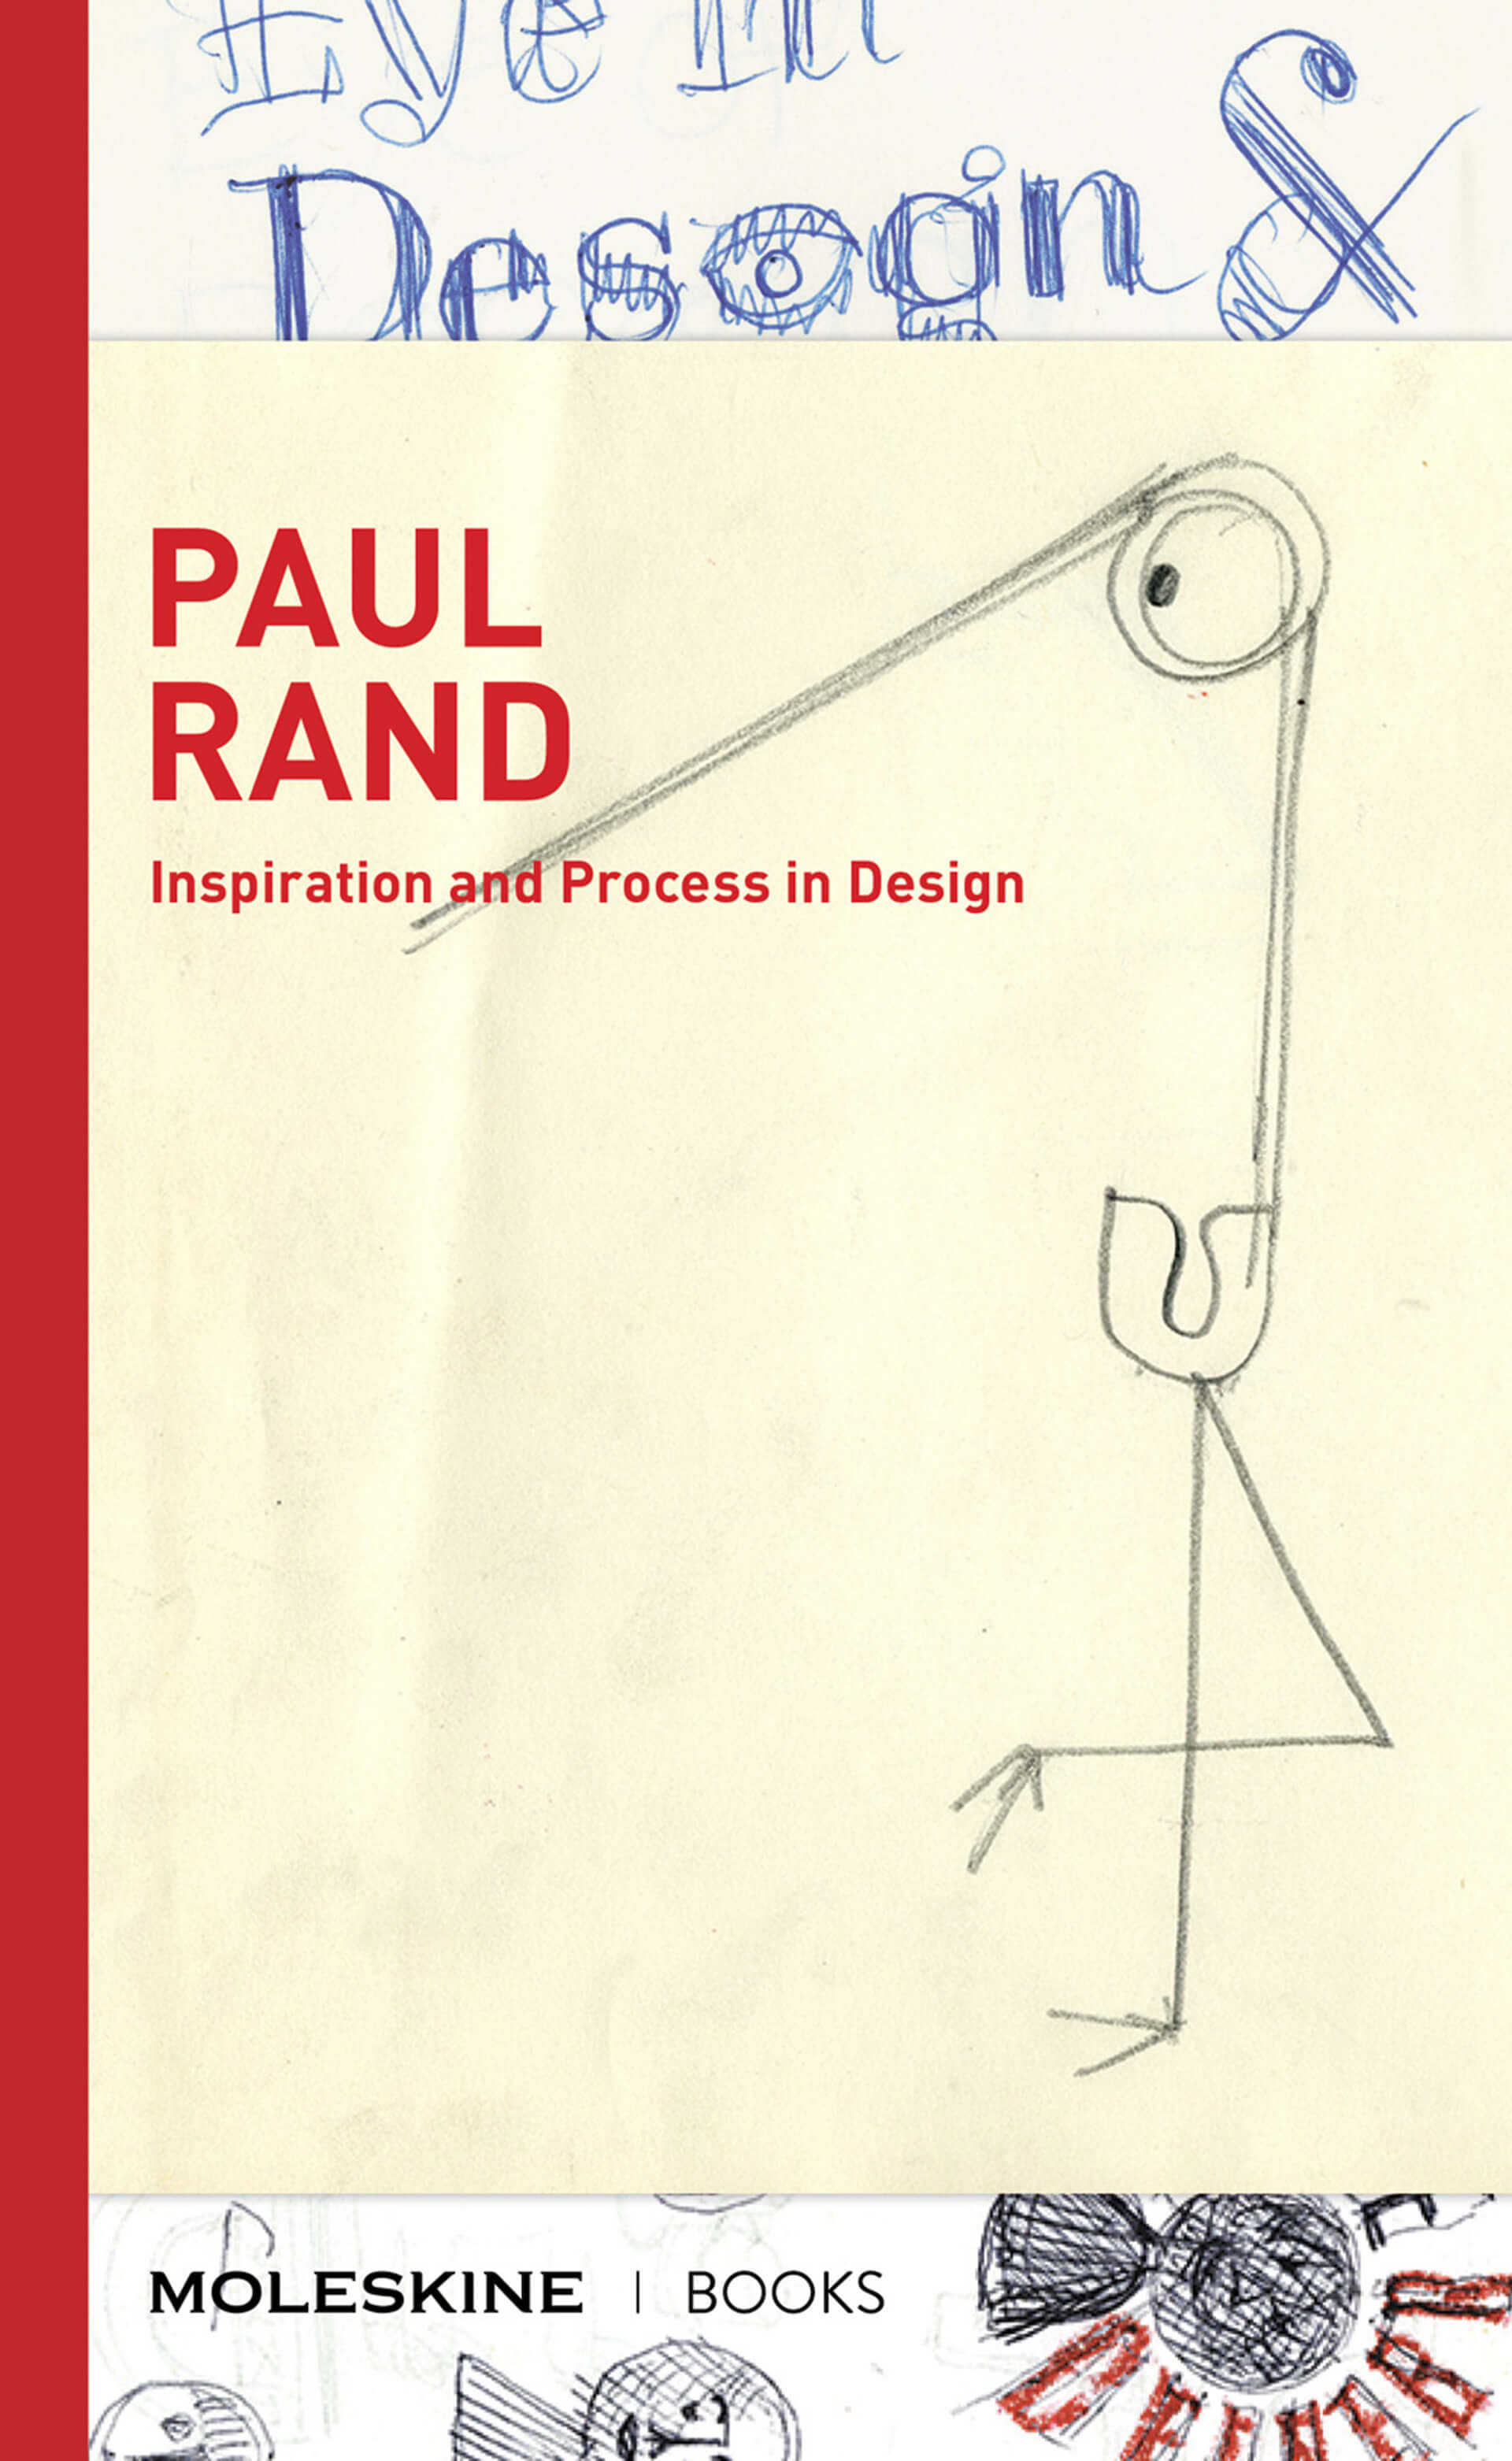 Paul Rand - Inspiration and Process in Design